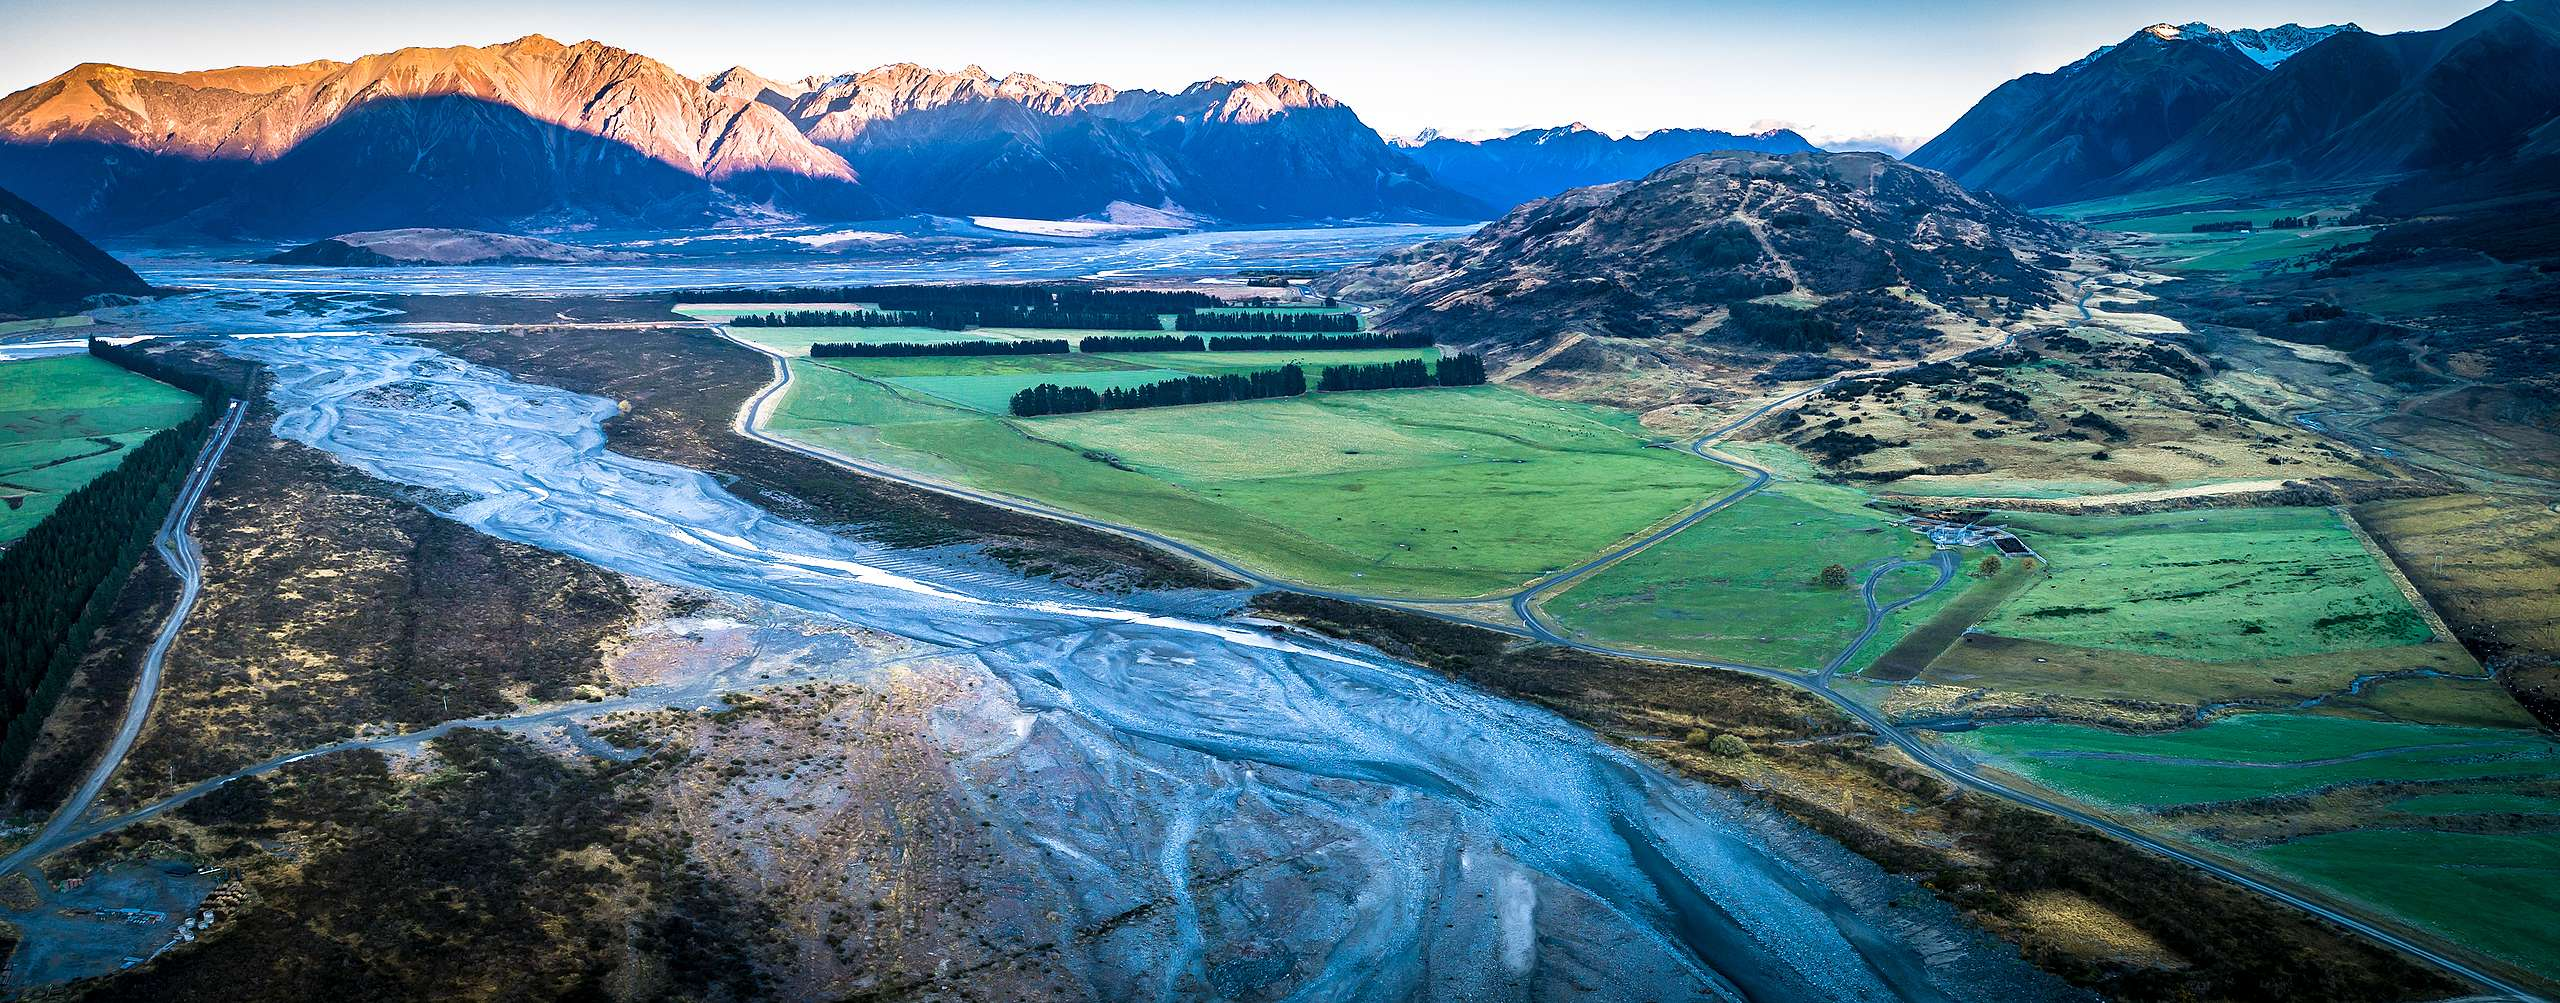 Mike Joy: New Zealand government ignores expert advice in its plan to improve water quality in rivers and lakes